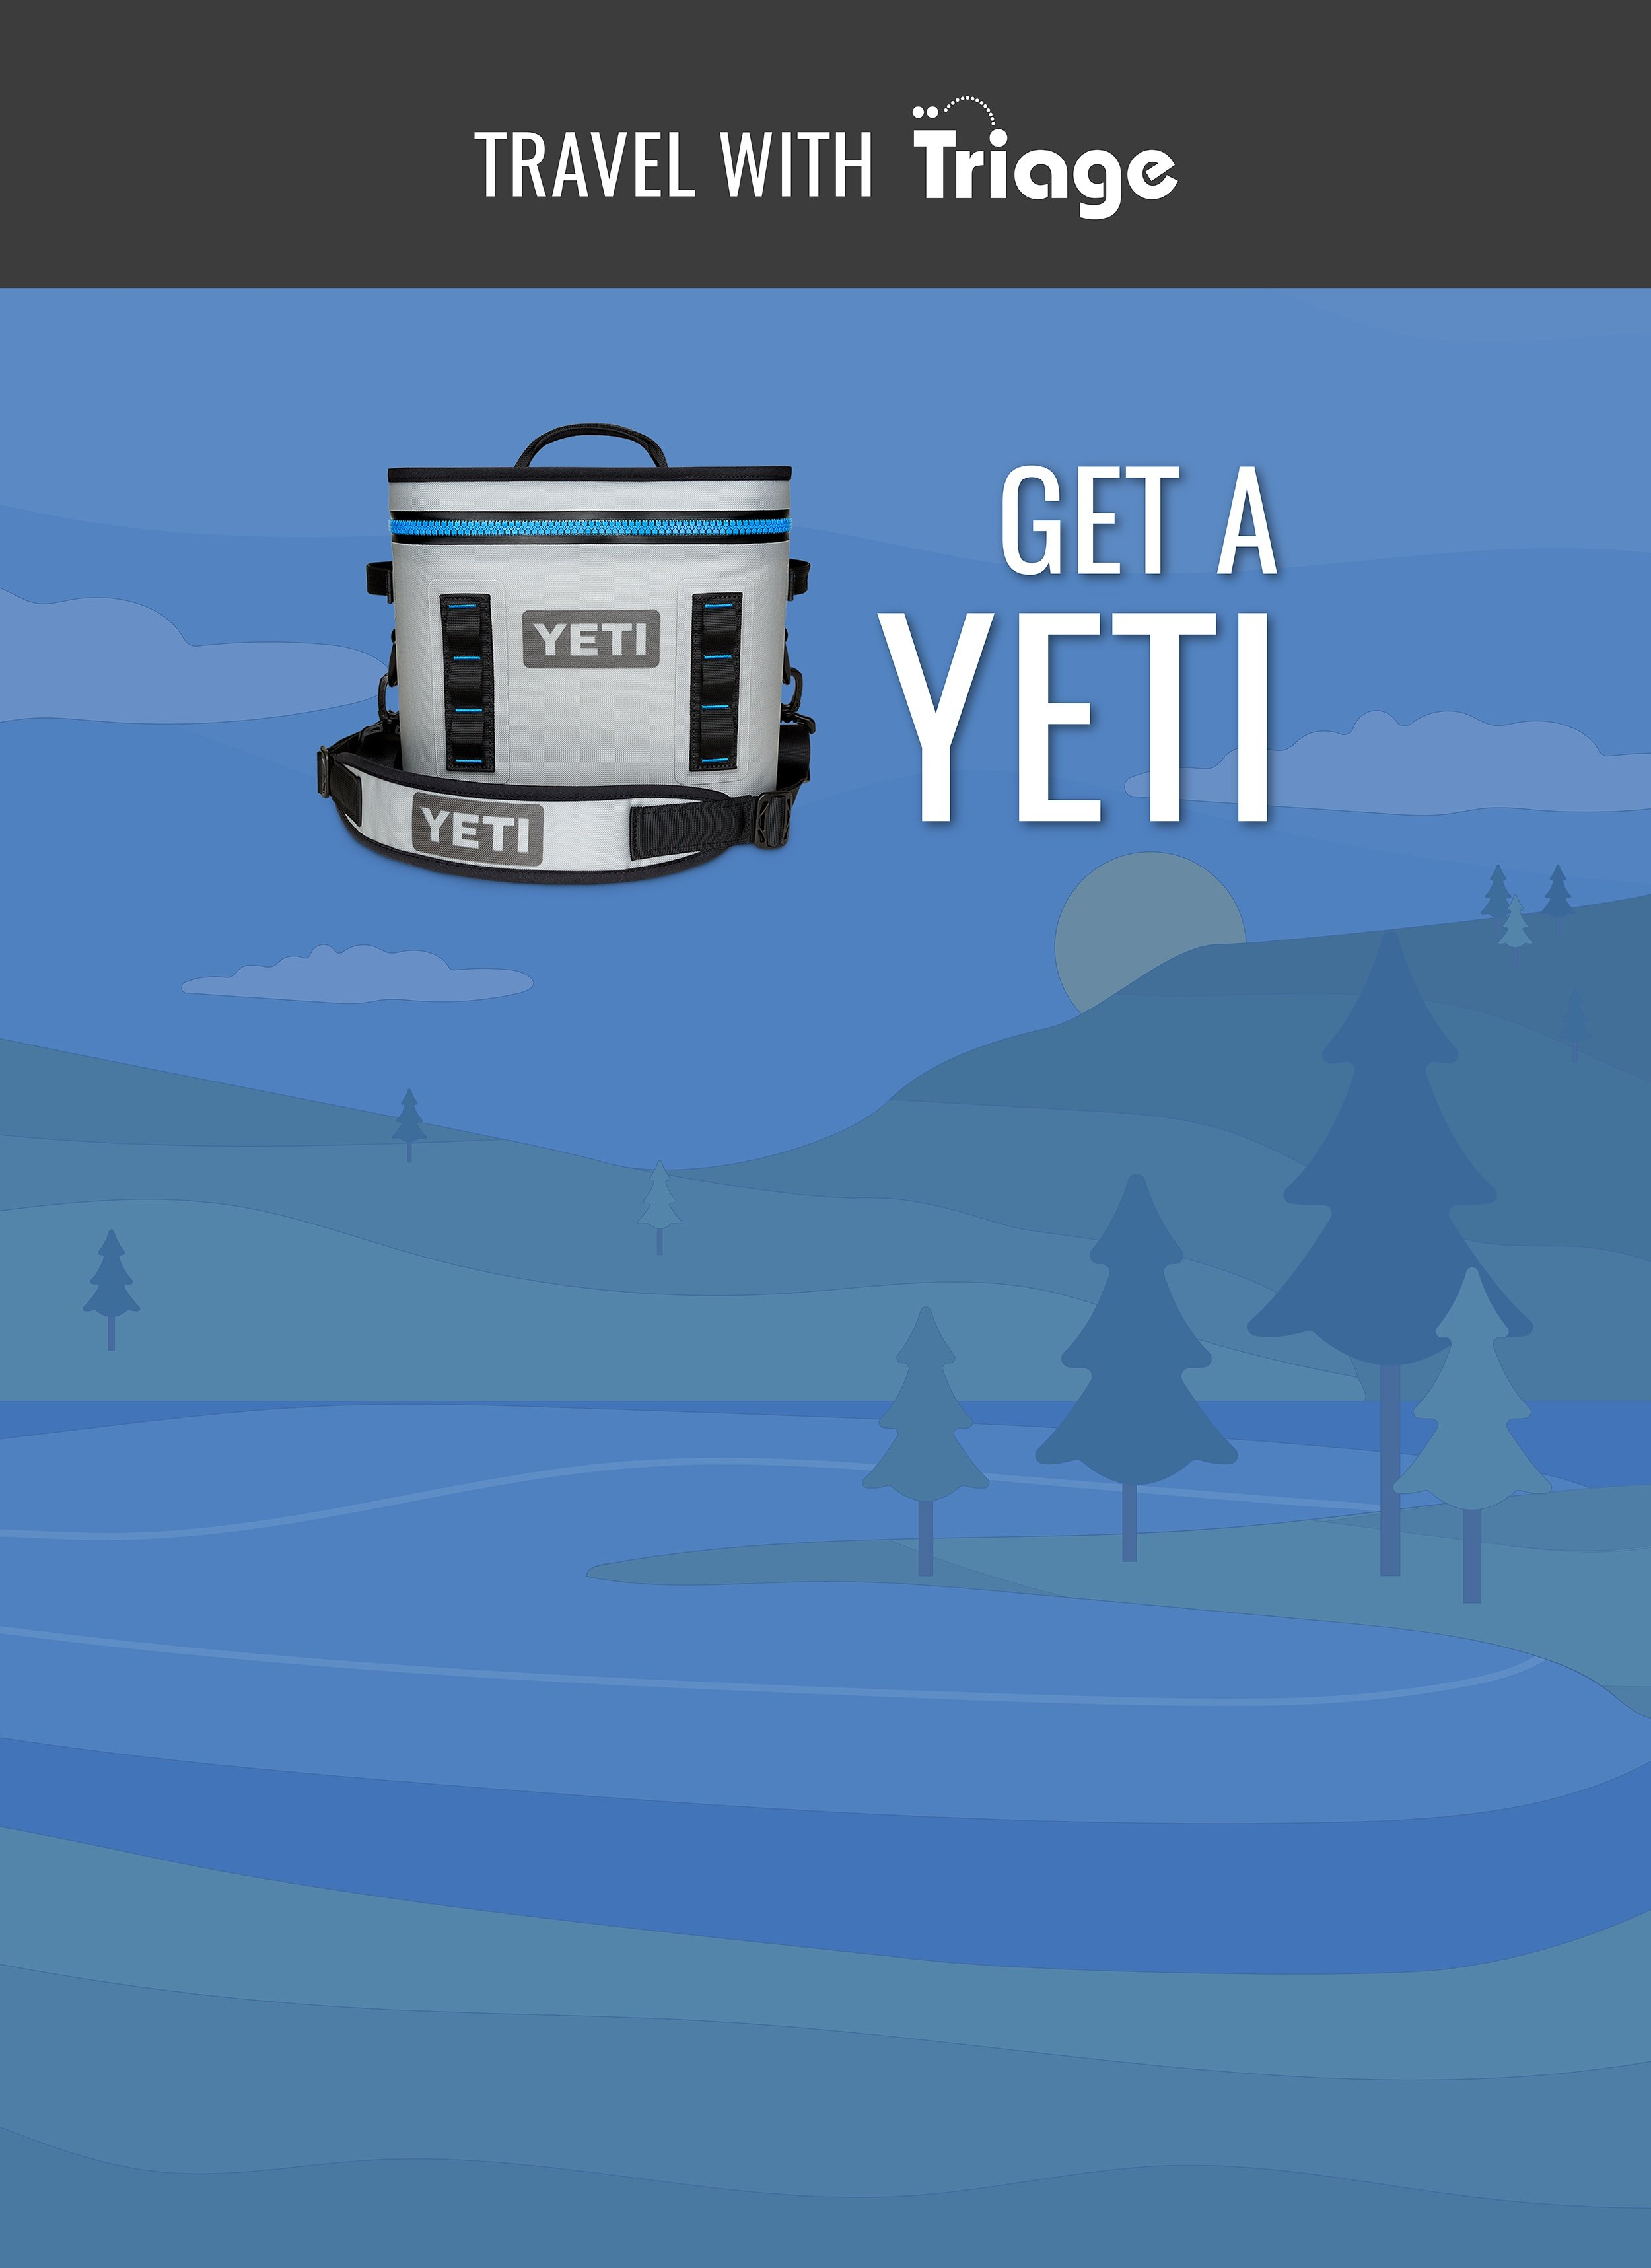 Travel with Triage YETI Giveaway